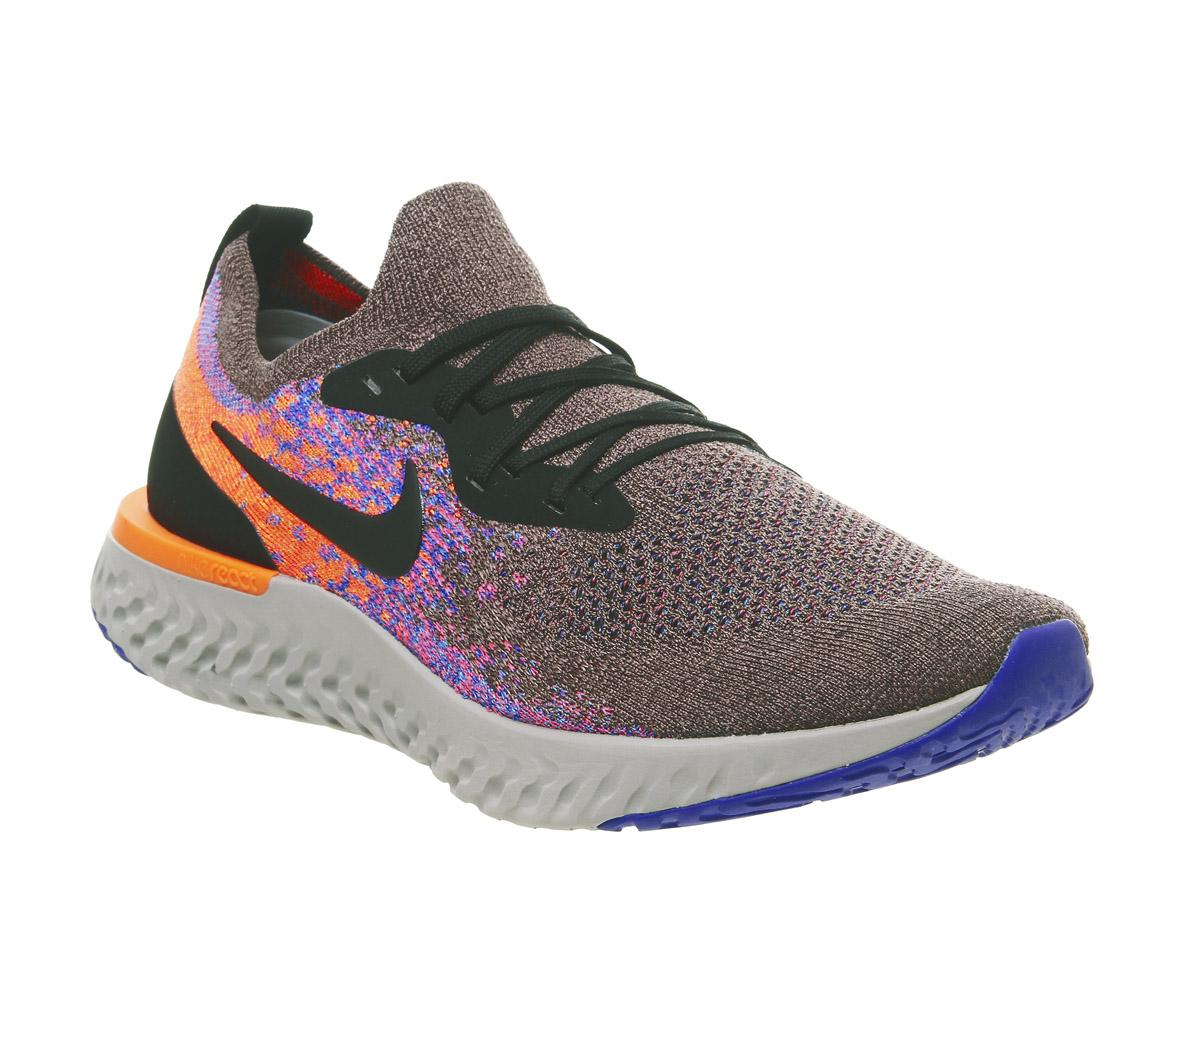 Epic React Flyknit Trainers